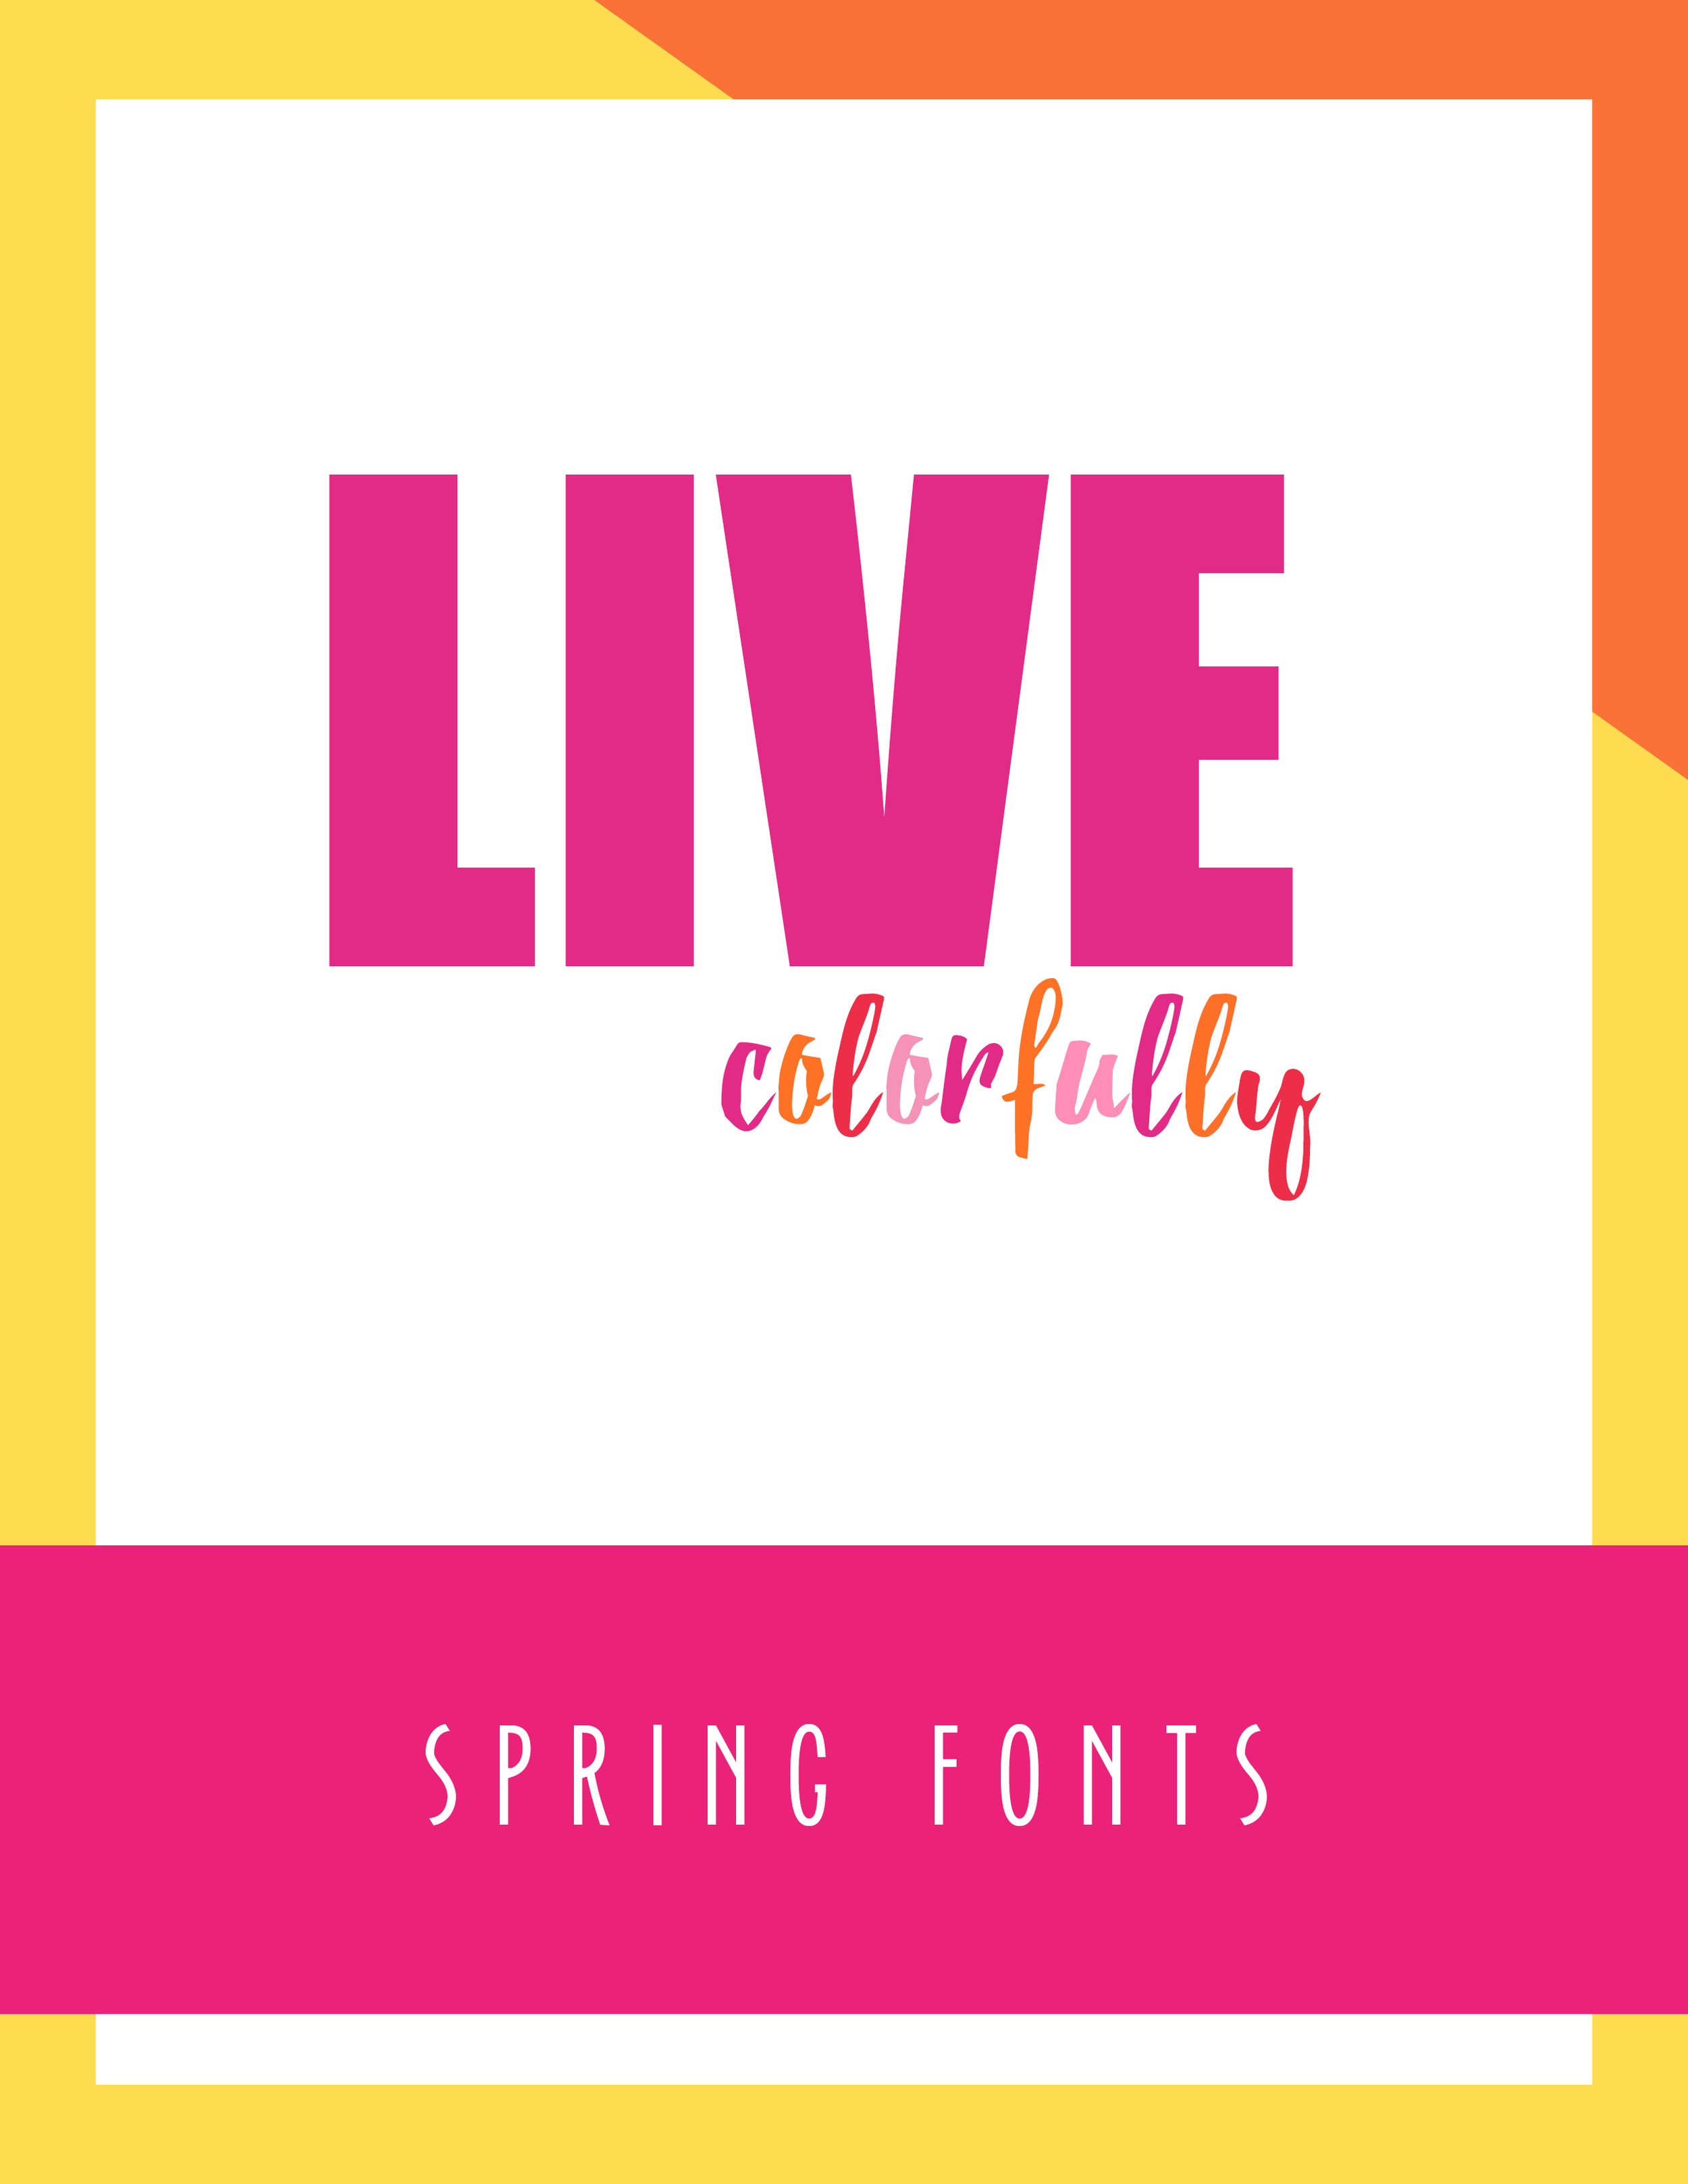 Bold & Pop Live Colorfully Spring Fonts